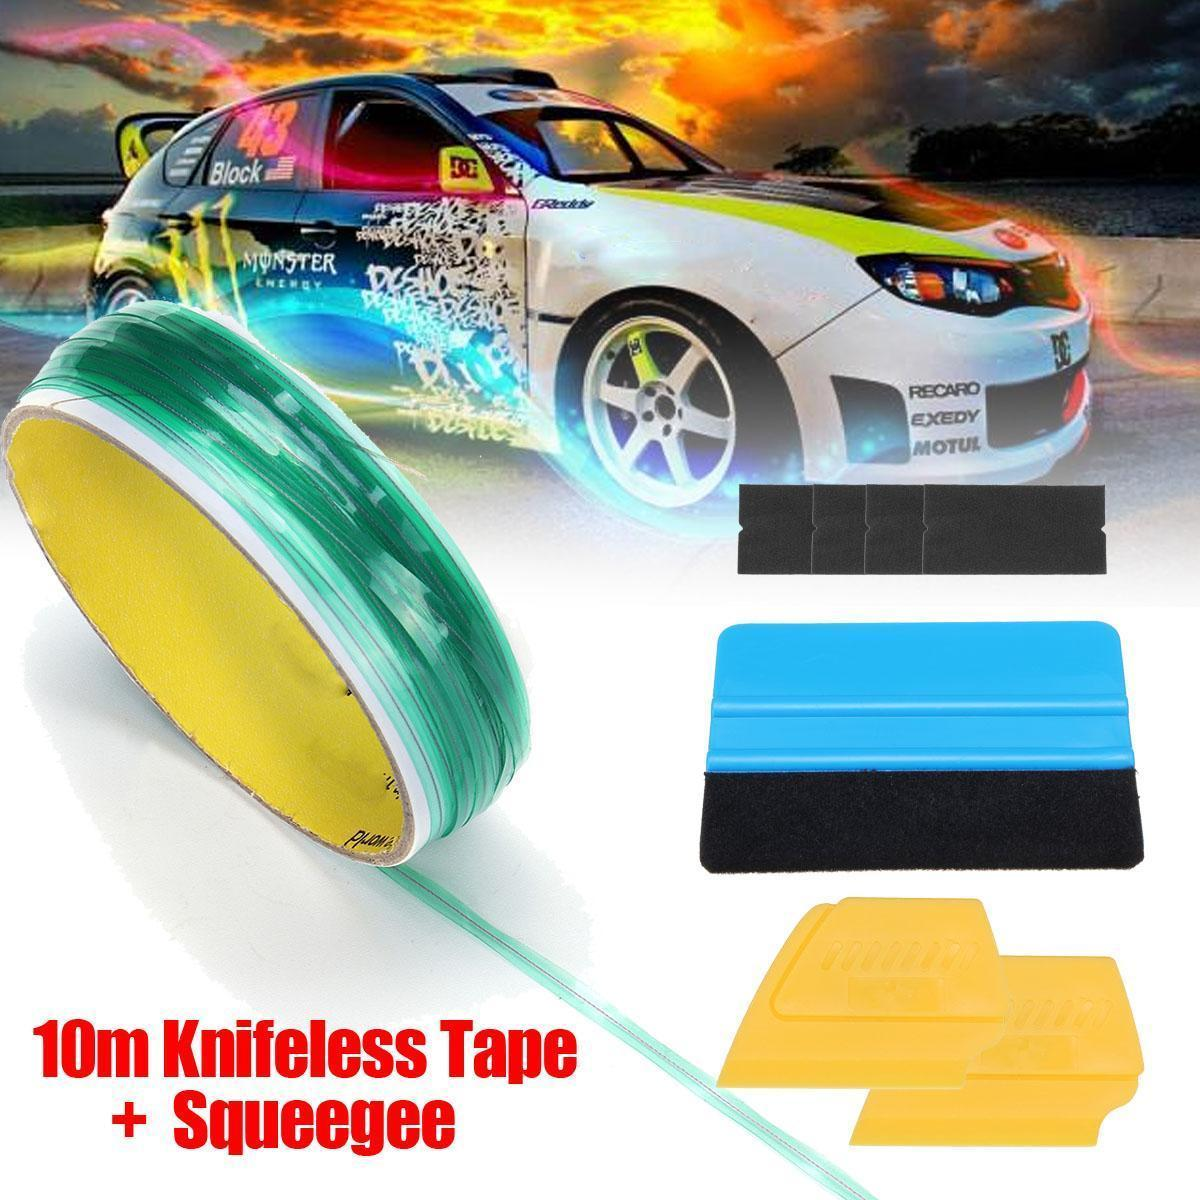 10M Knifeless Finish Line Tape Cutter Graphic Pro Vinyl Trim Cutting Wrap  Tool+2 pcs Squeegee+ 1 pcs Flannel Cloth for Car Vinyl Wrapping Film  Cutting